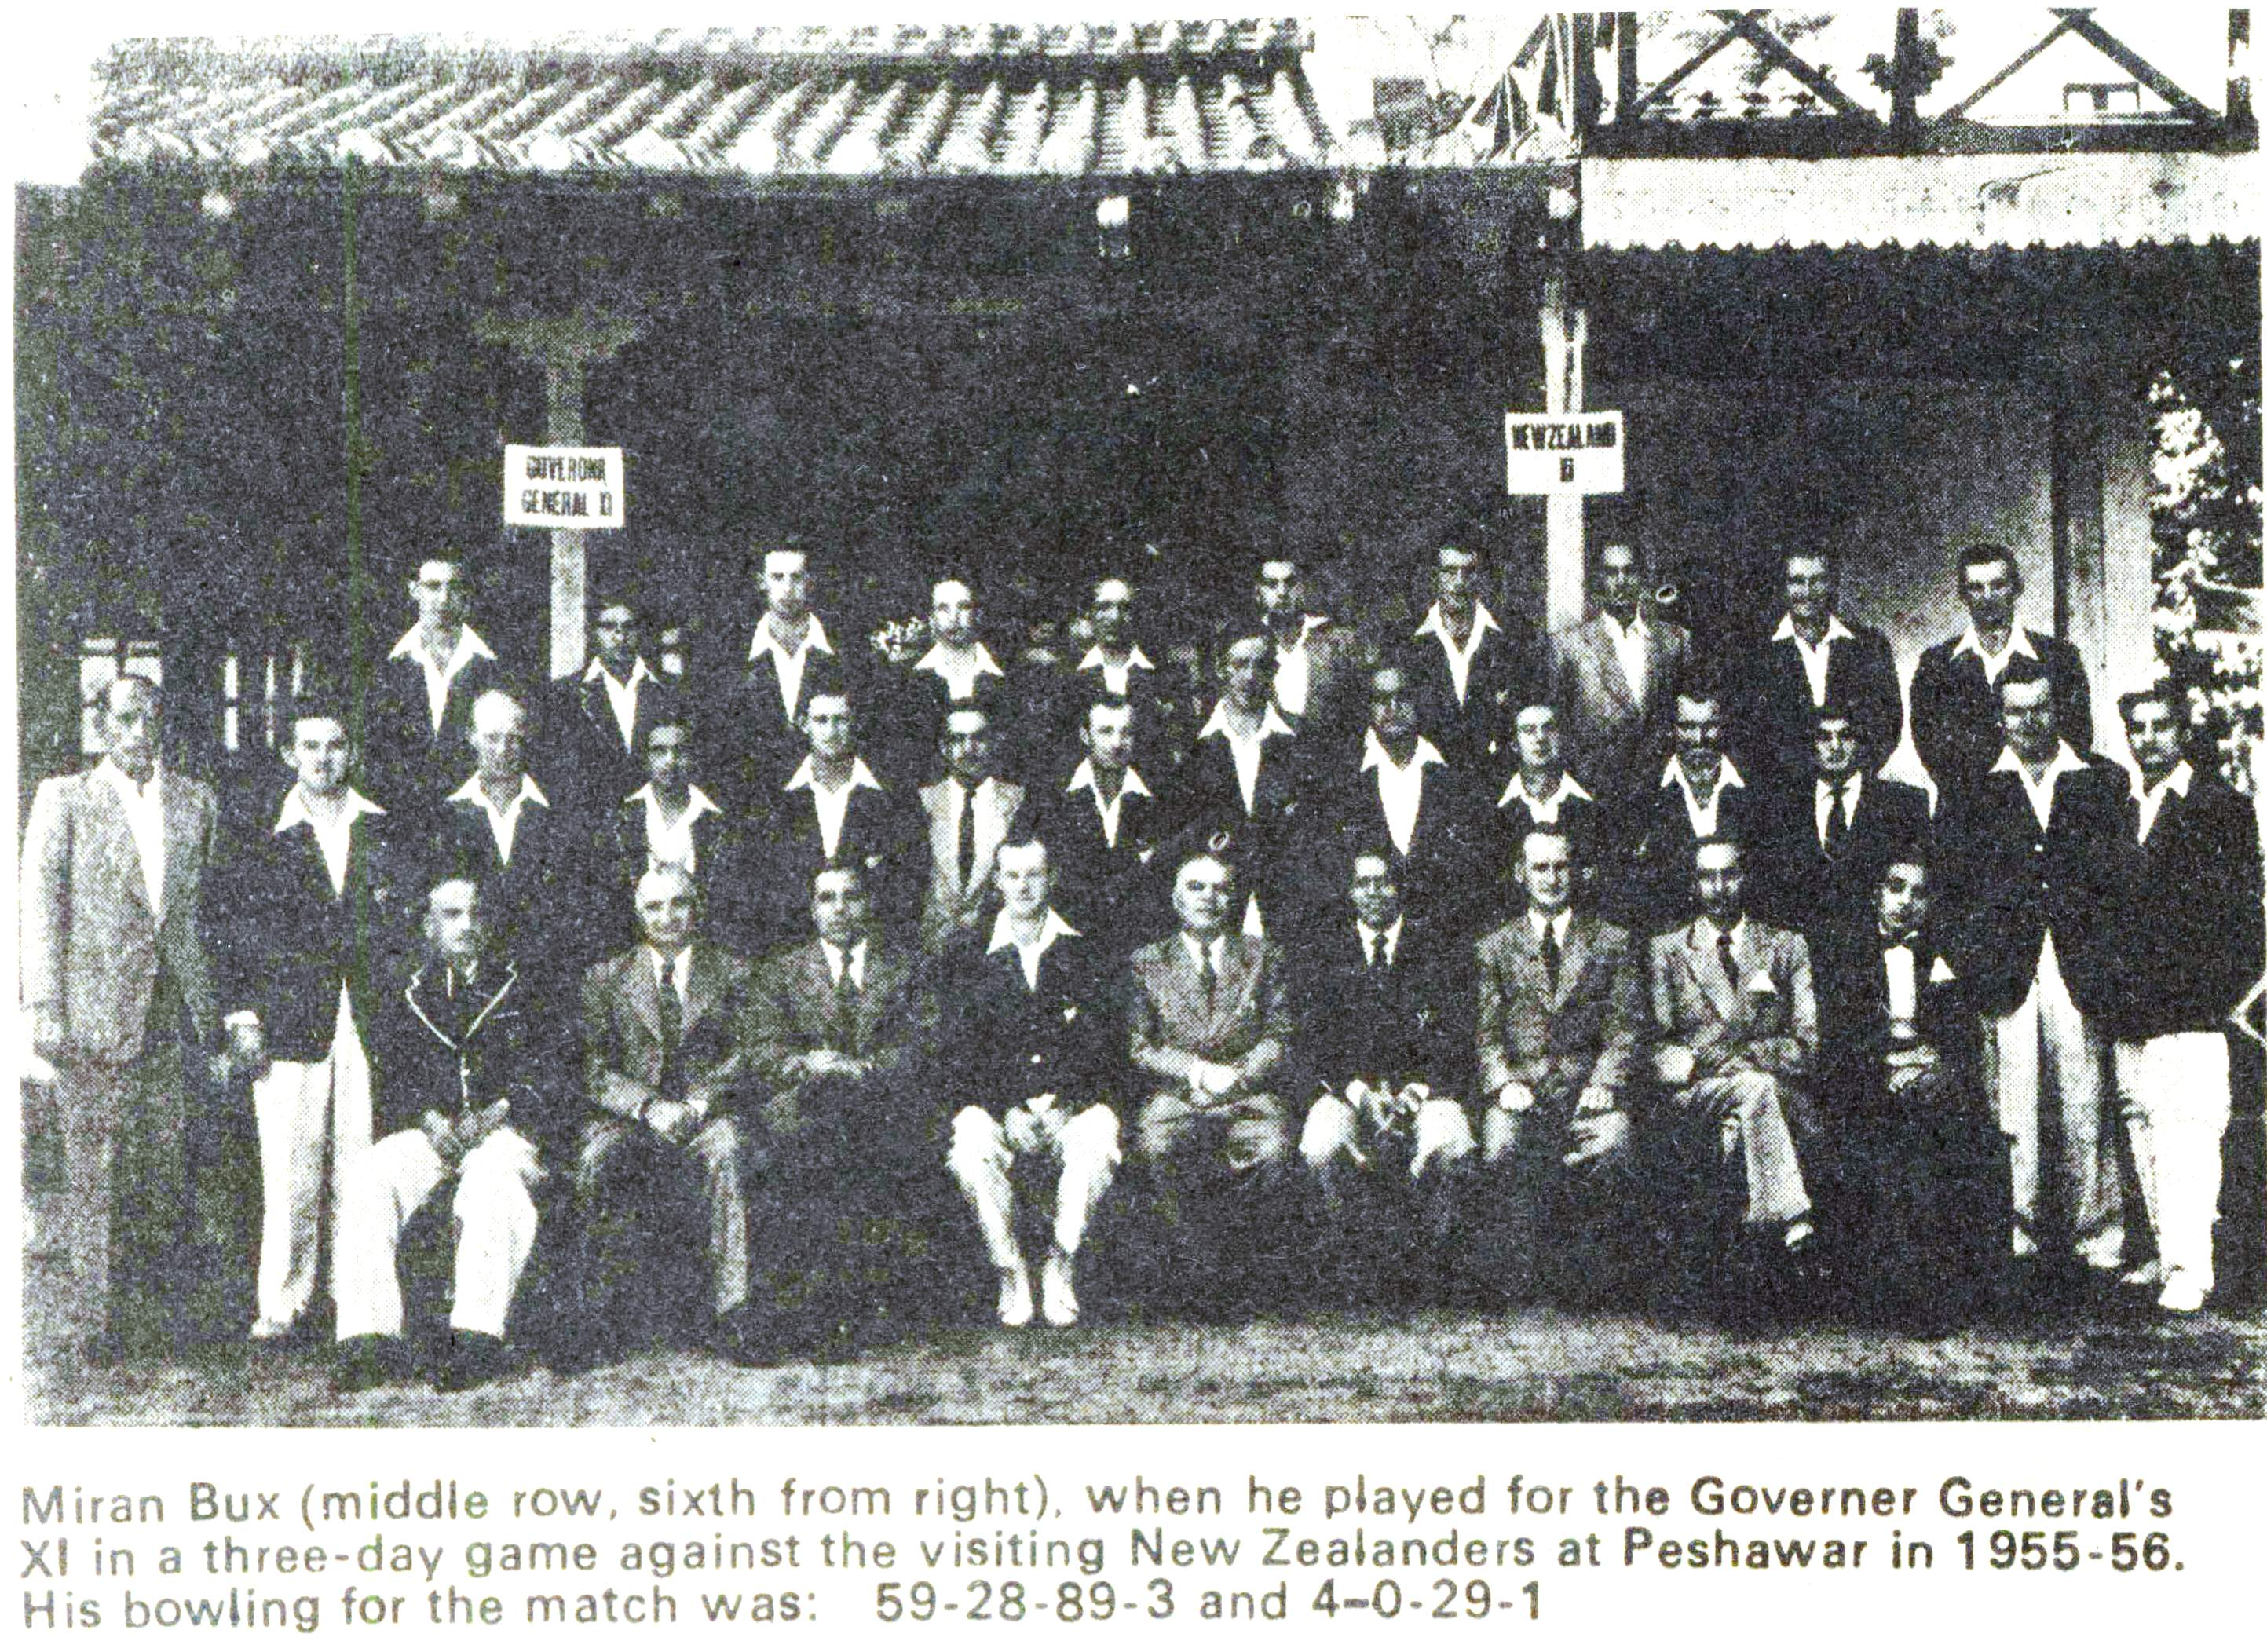 miran-bux-6th-from-right-in-the-middle-row-against-new-zealand-at-peshawar